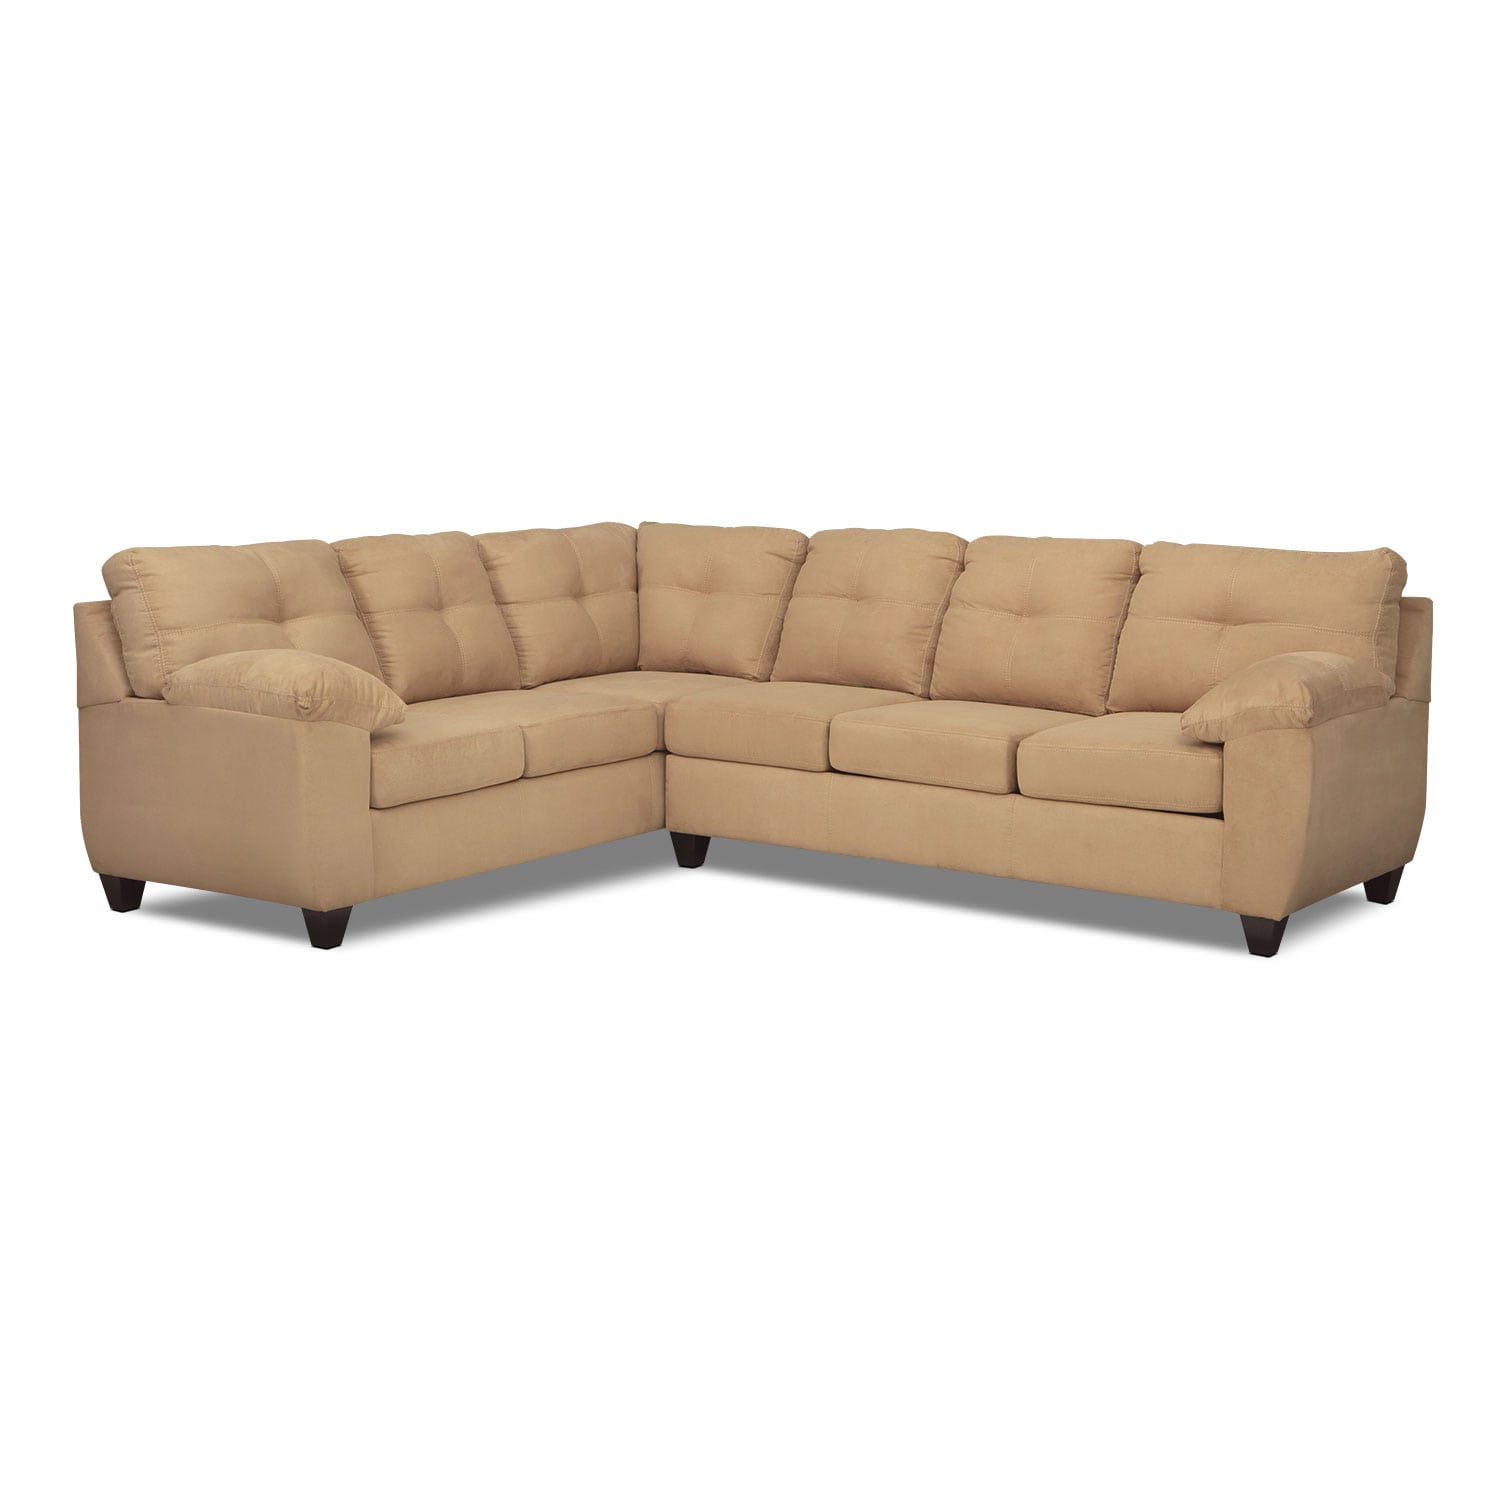 Living Room Furniture - Rialto Camel 2 Pc. Sectional with Right-Facing Memory Foam Sleeper